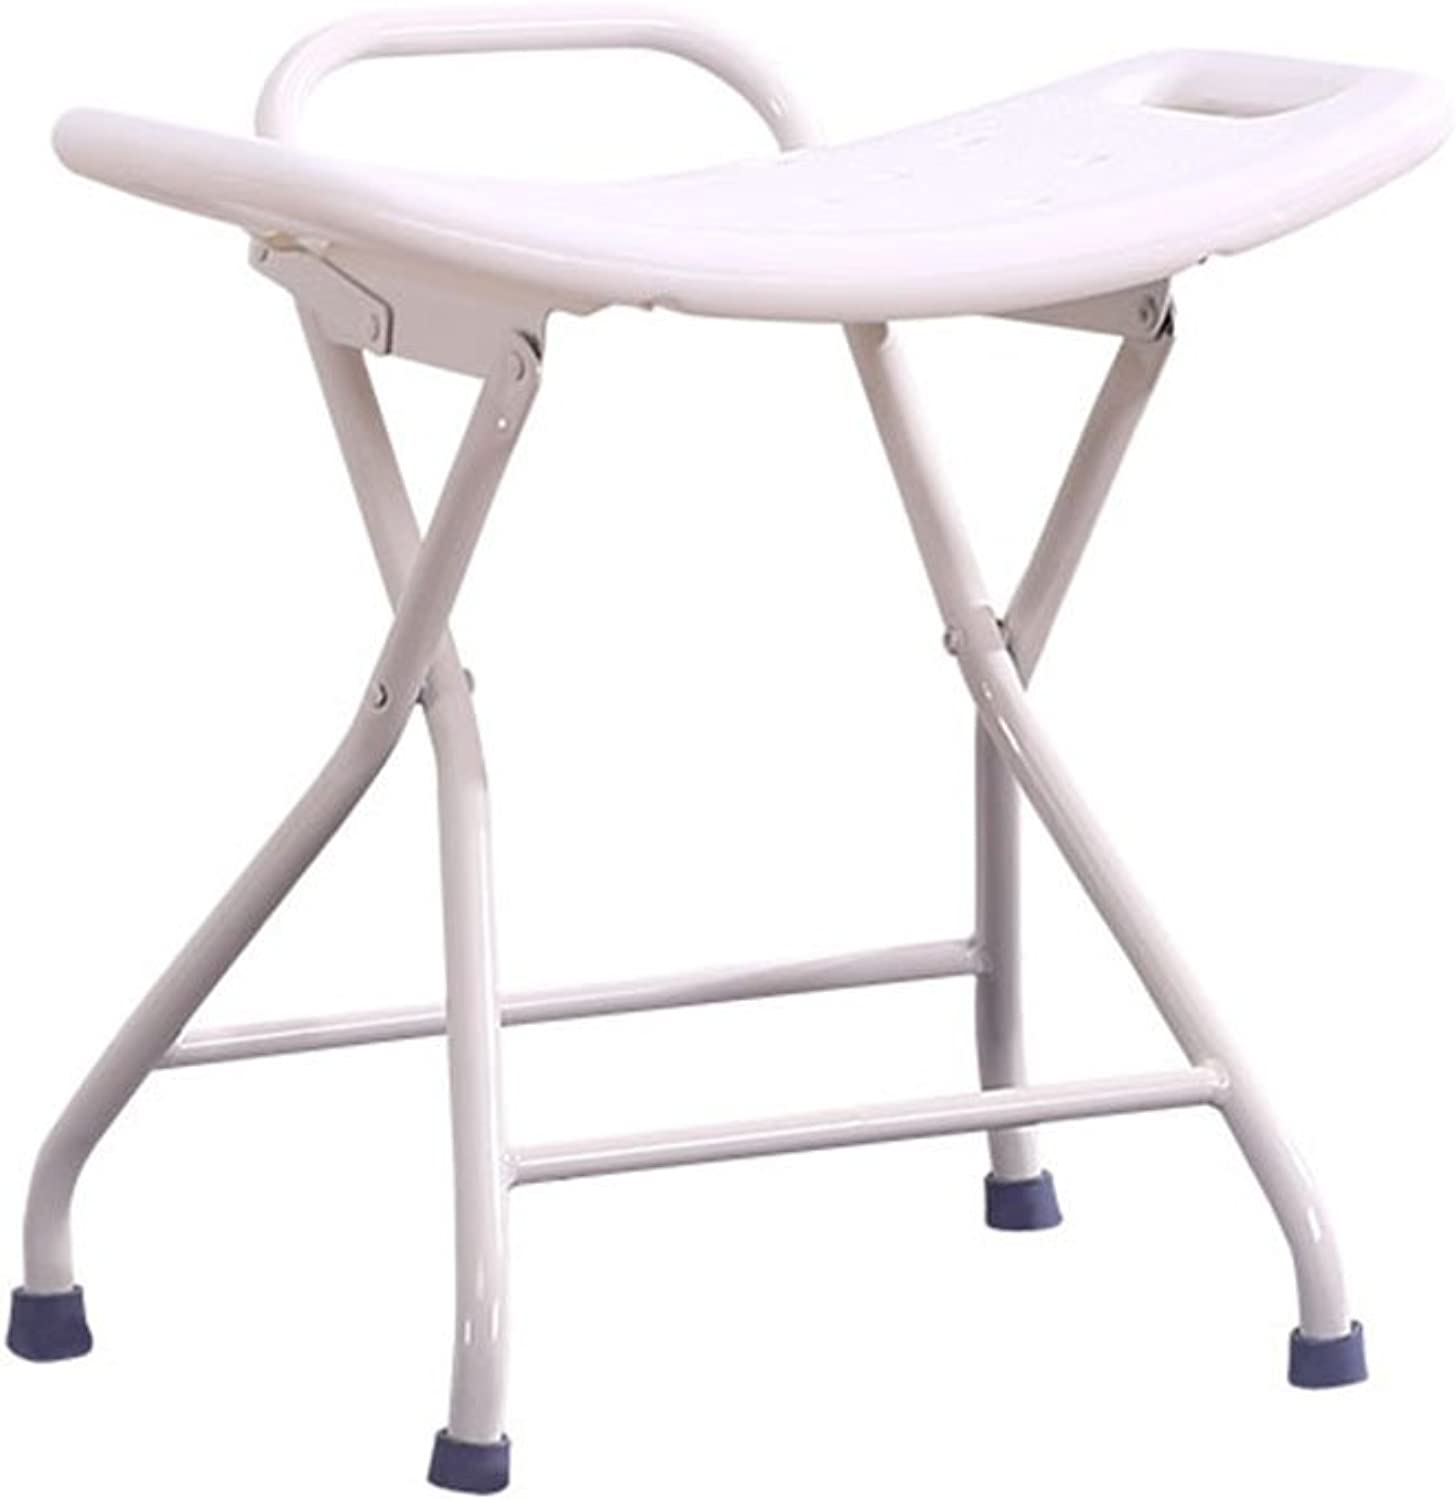 Home Folding Bathroom Stool Old Security Chair Plastic Adult Stool Antiskid Thicken Bathing Stool (color   White)